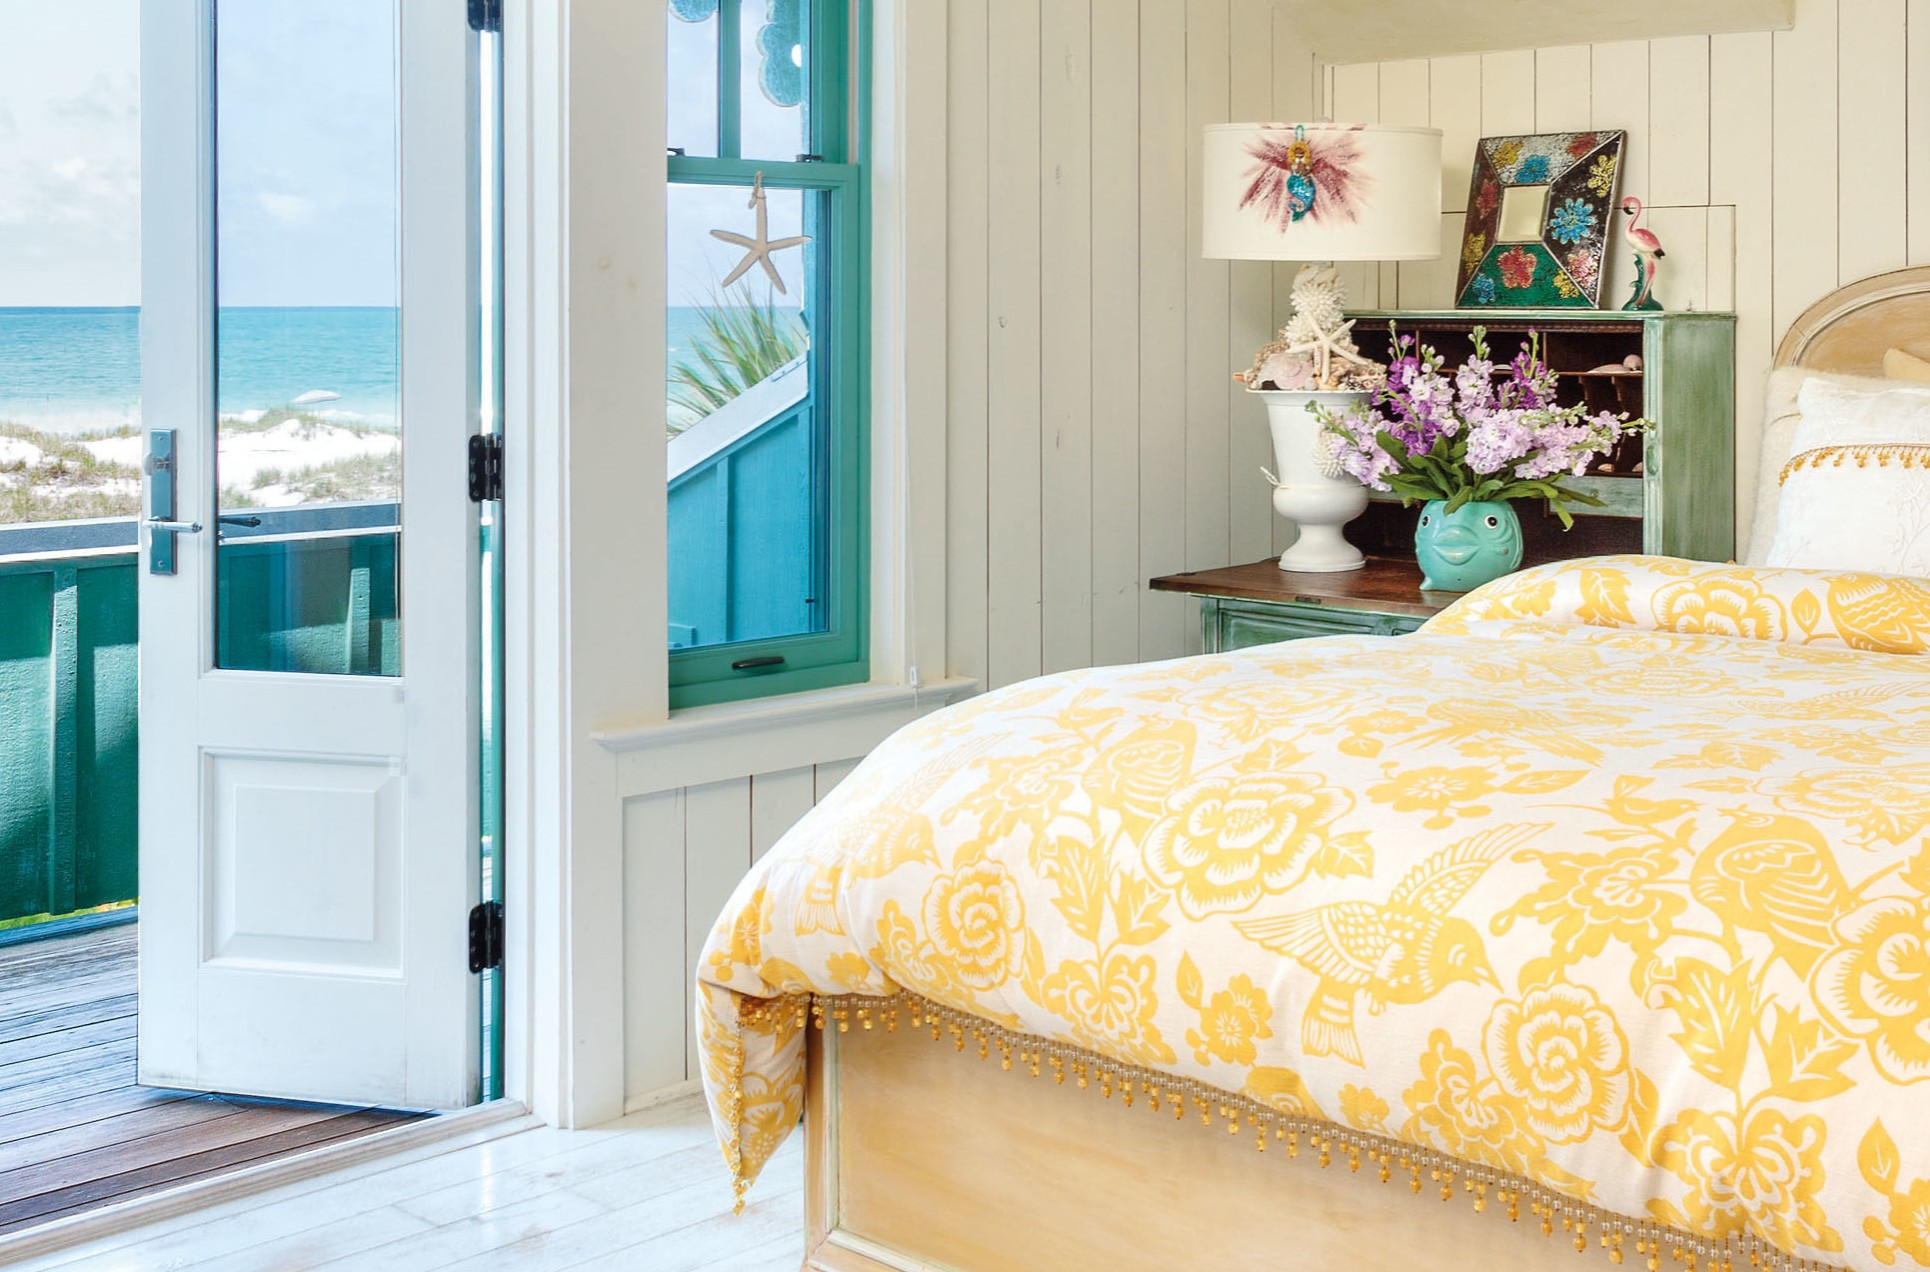 White painted floorboards and pale yellow walls and ceiling create a sunny, shoreside atmosphere, while a fish-shaped vase and a duvet cover decorated with hummingbirds and flowers are the perfect finishing touches. Mark Lohman/Global Bohemian/Cico Books/